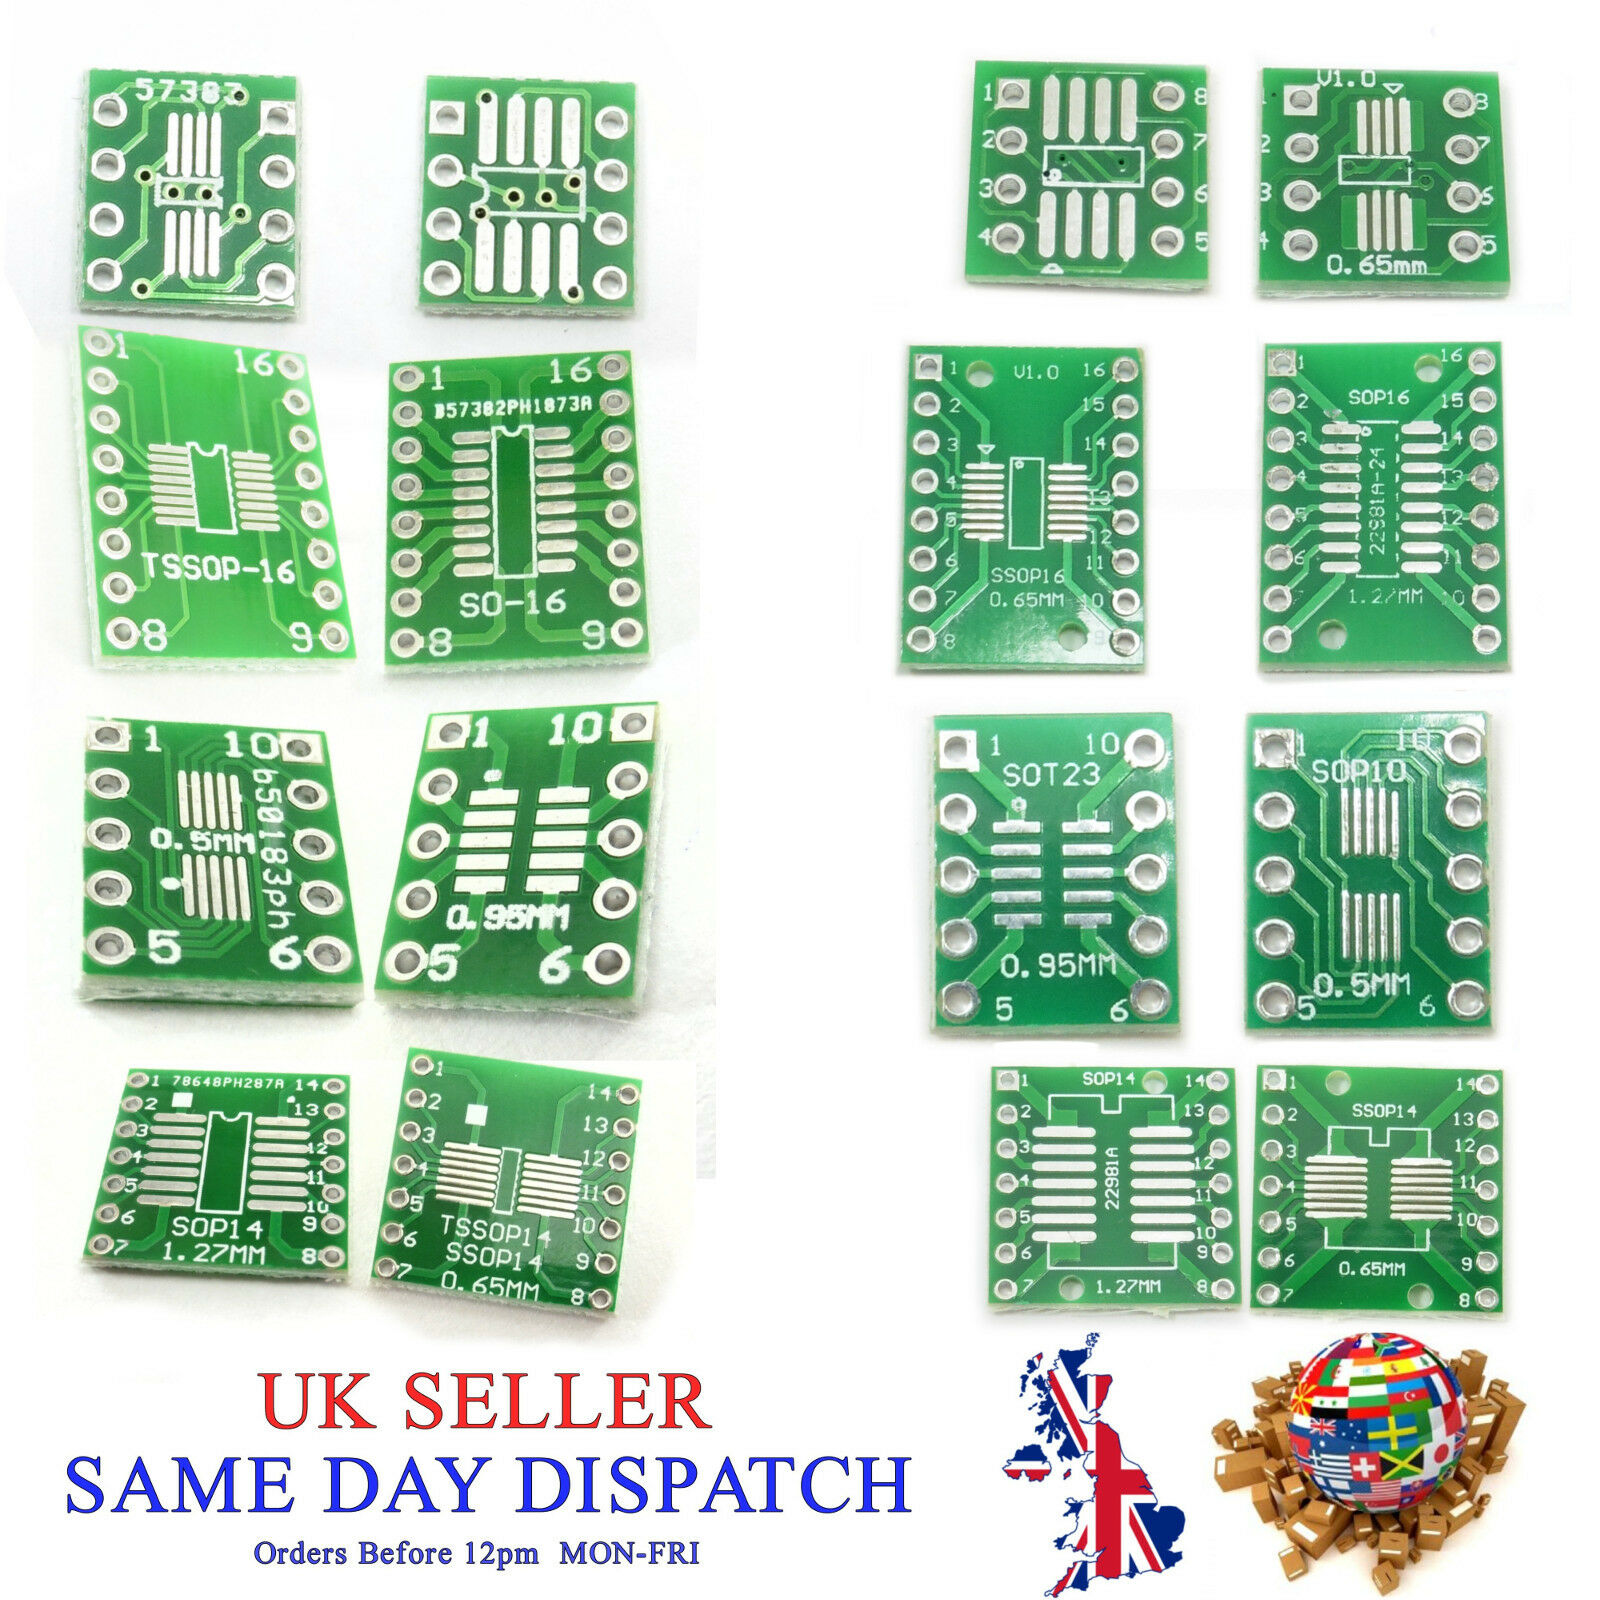 Pcb Sop So Tssop Msop Sot Qfp Tqfp Lqfp To Dip Converter Board Pin Small Outline Integrated Circuit Soic And Plate Adapter 1 Of 1free Shipping